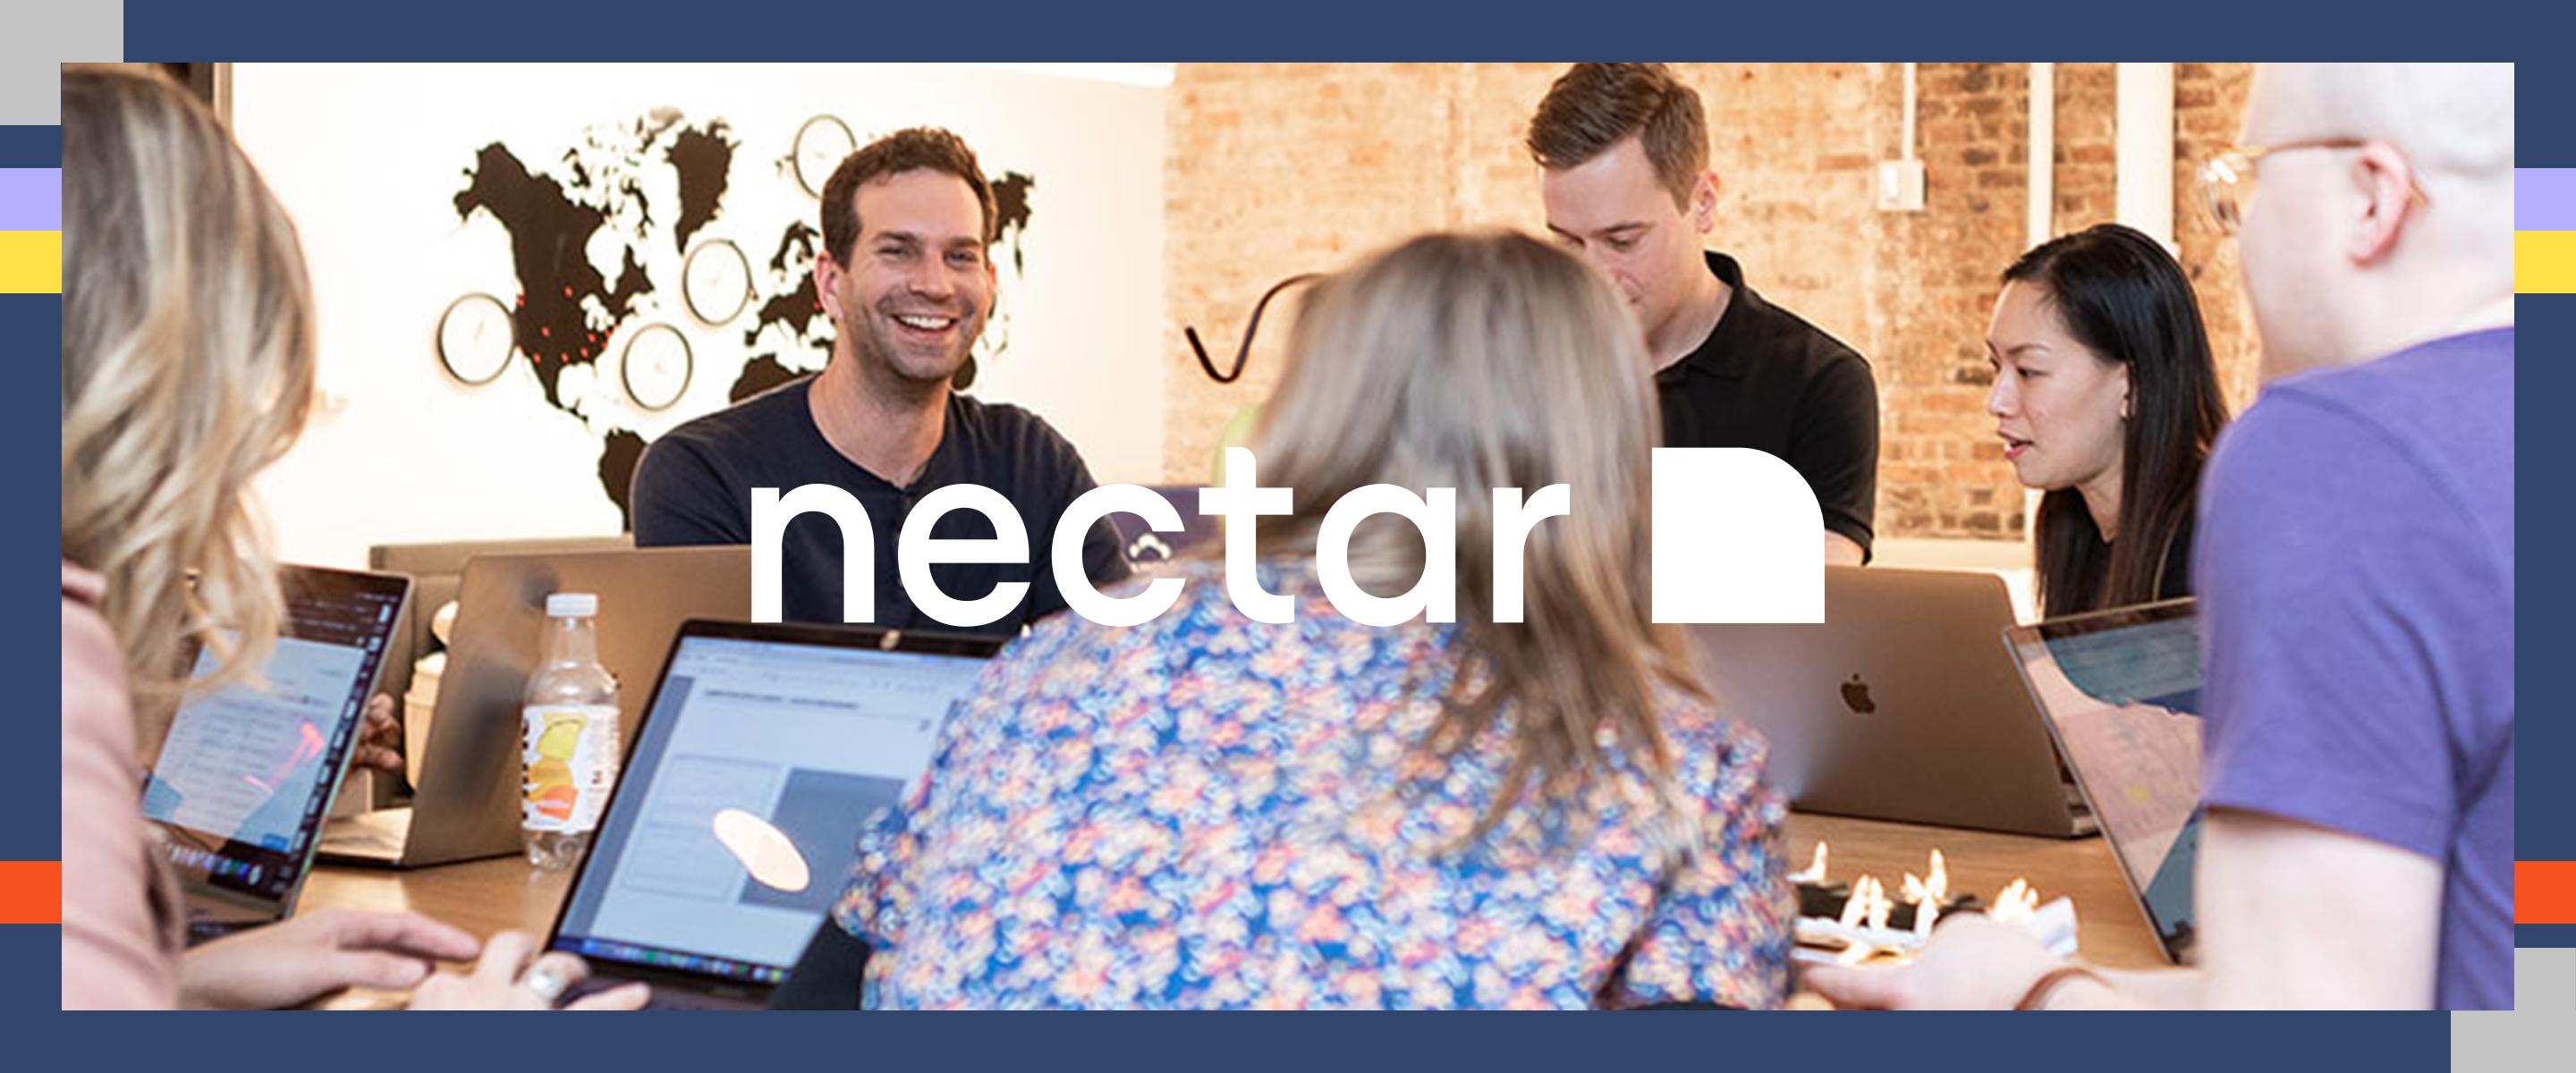 Nectar-Team-Support-and-Serve